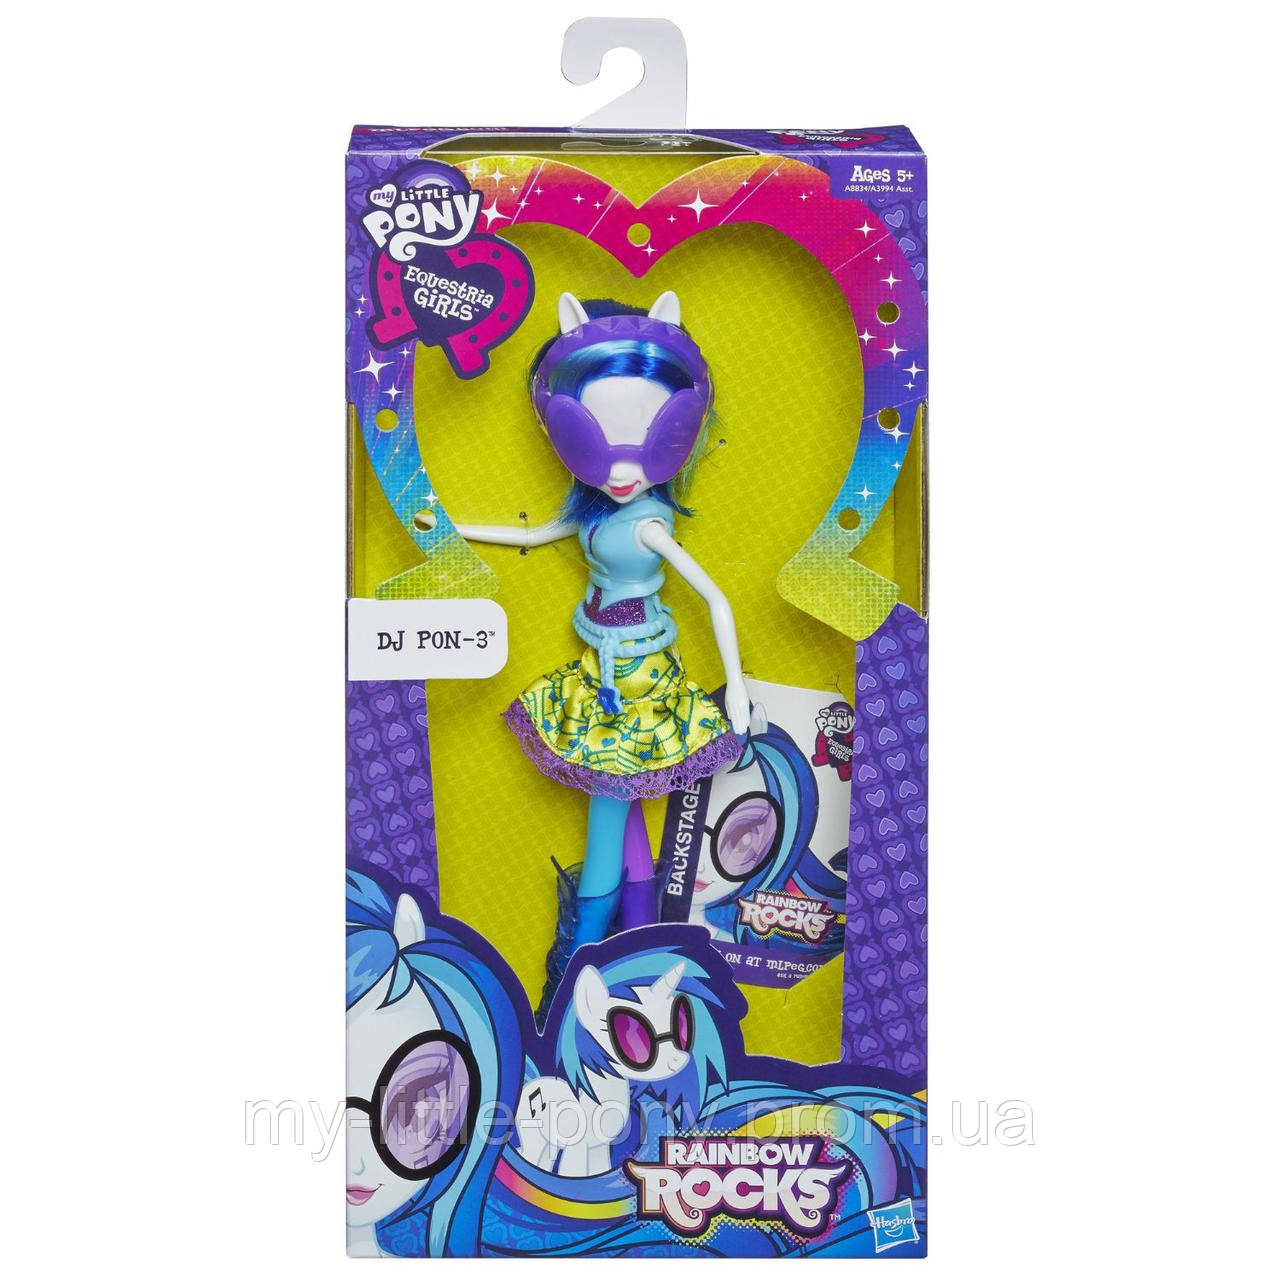 Кукла пони Диджей Пон Эквестрия Герлз Май Литл Пони Hasbro (DJ Pon-3 My Little Pony)